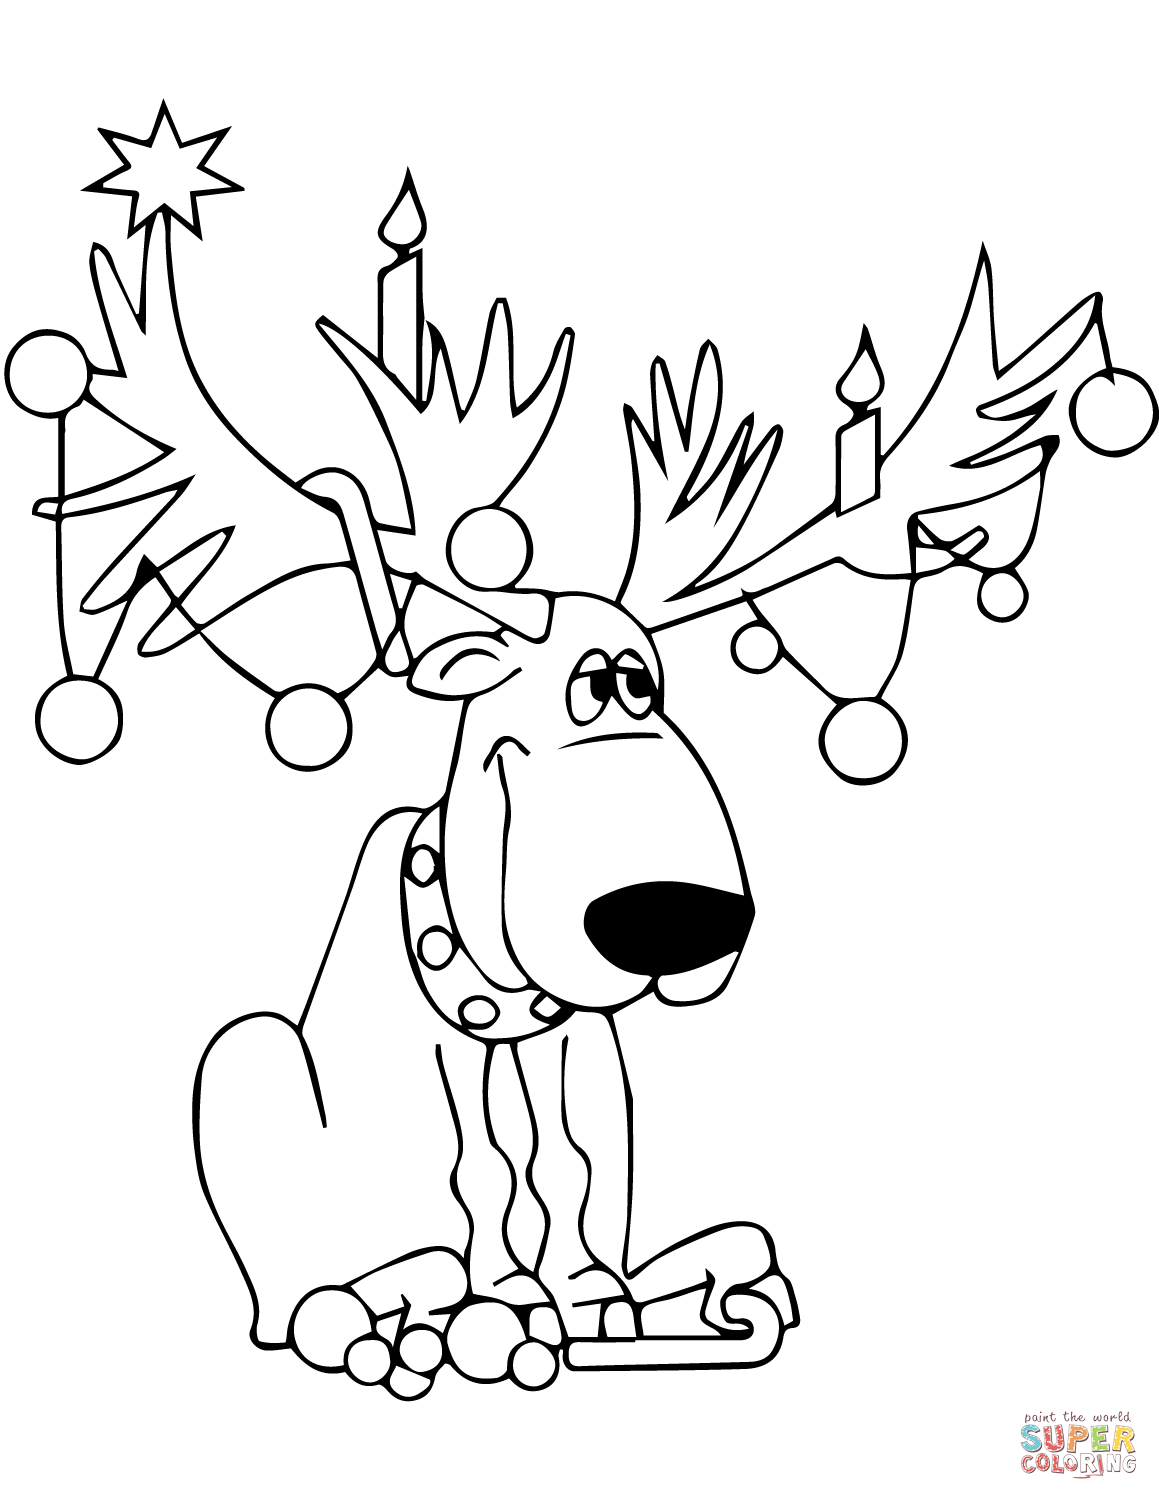 Christmas Lights Coloring Pages | Free Coloring Pages - Free Printable Christmas Lights Coloring Pages